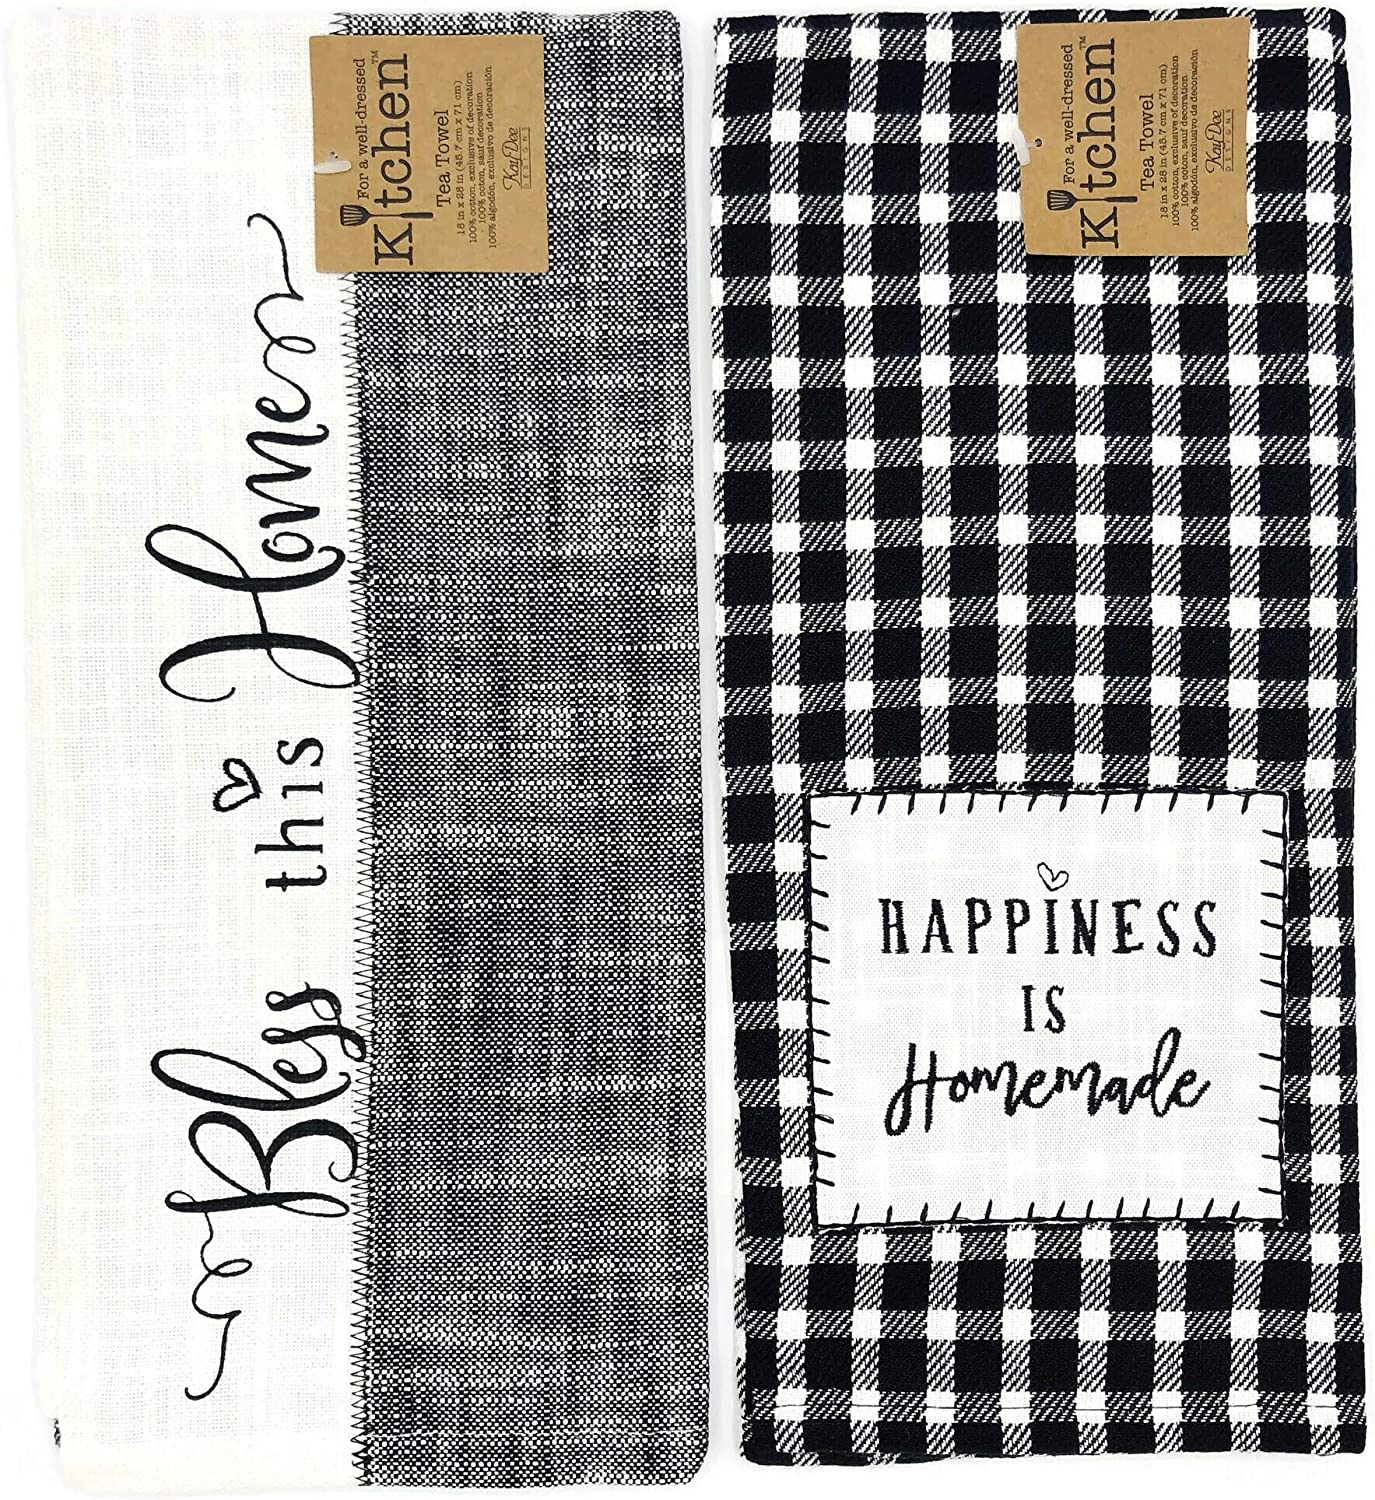 Kay Dee Designs Farmhouse, Happiness is Homemade & Bless This Home Tea Towel Kitchen Dishtowel Set, Classic Flat Tea Towel Ideal for Drying Glassware and Everyday Kitchen Tasks